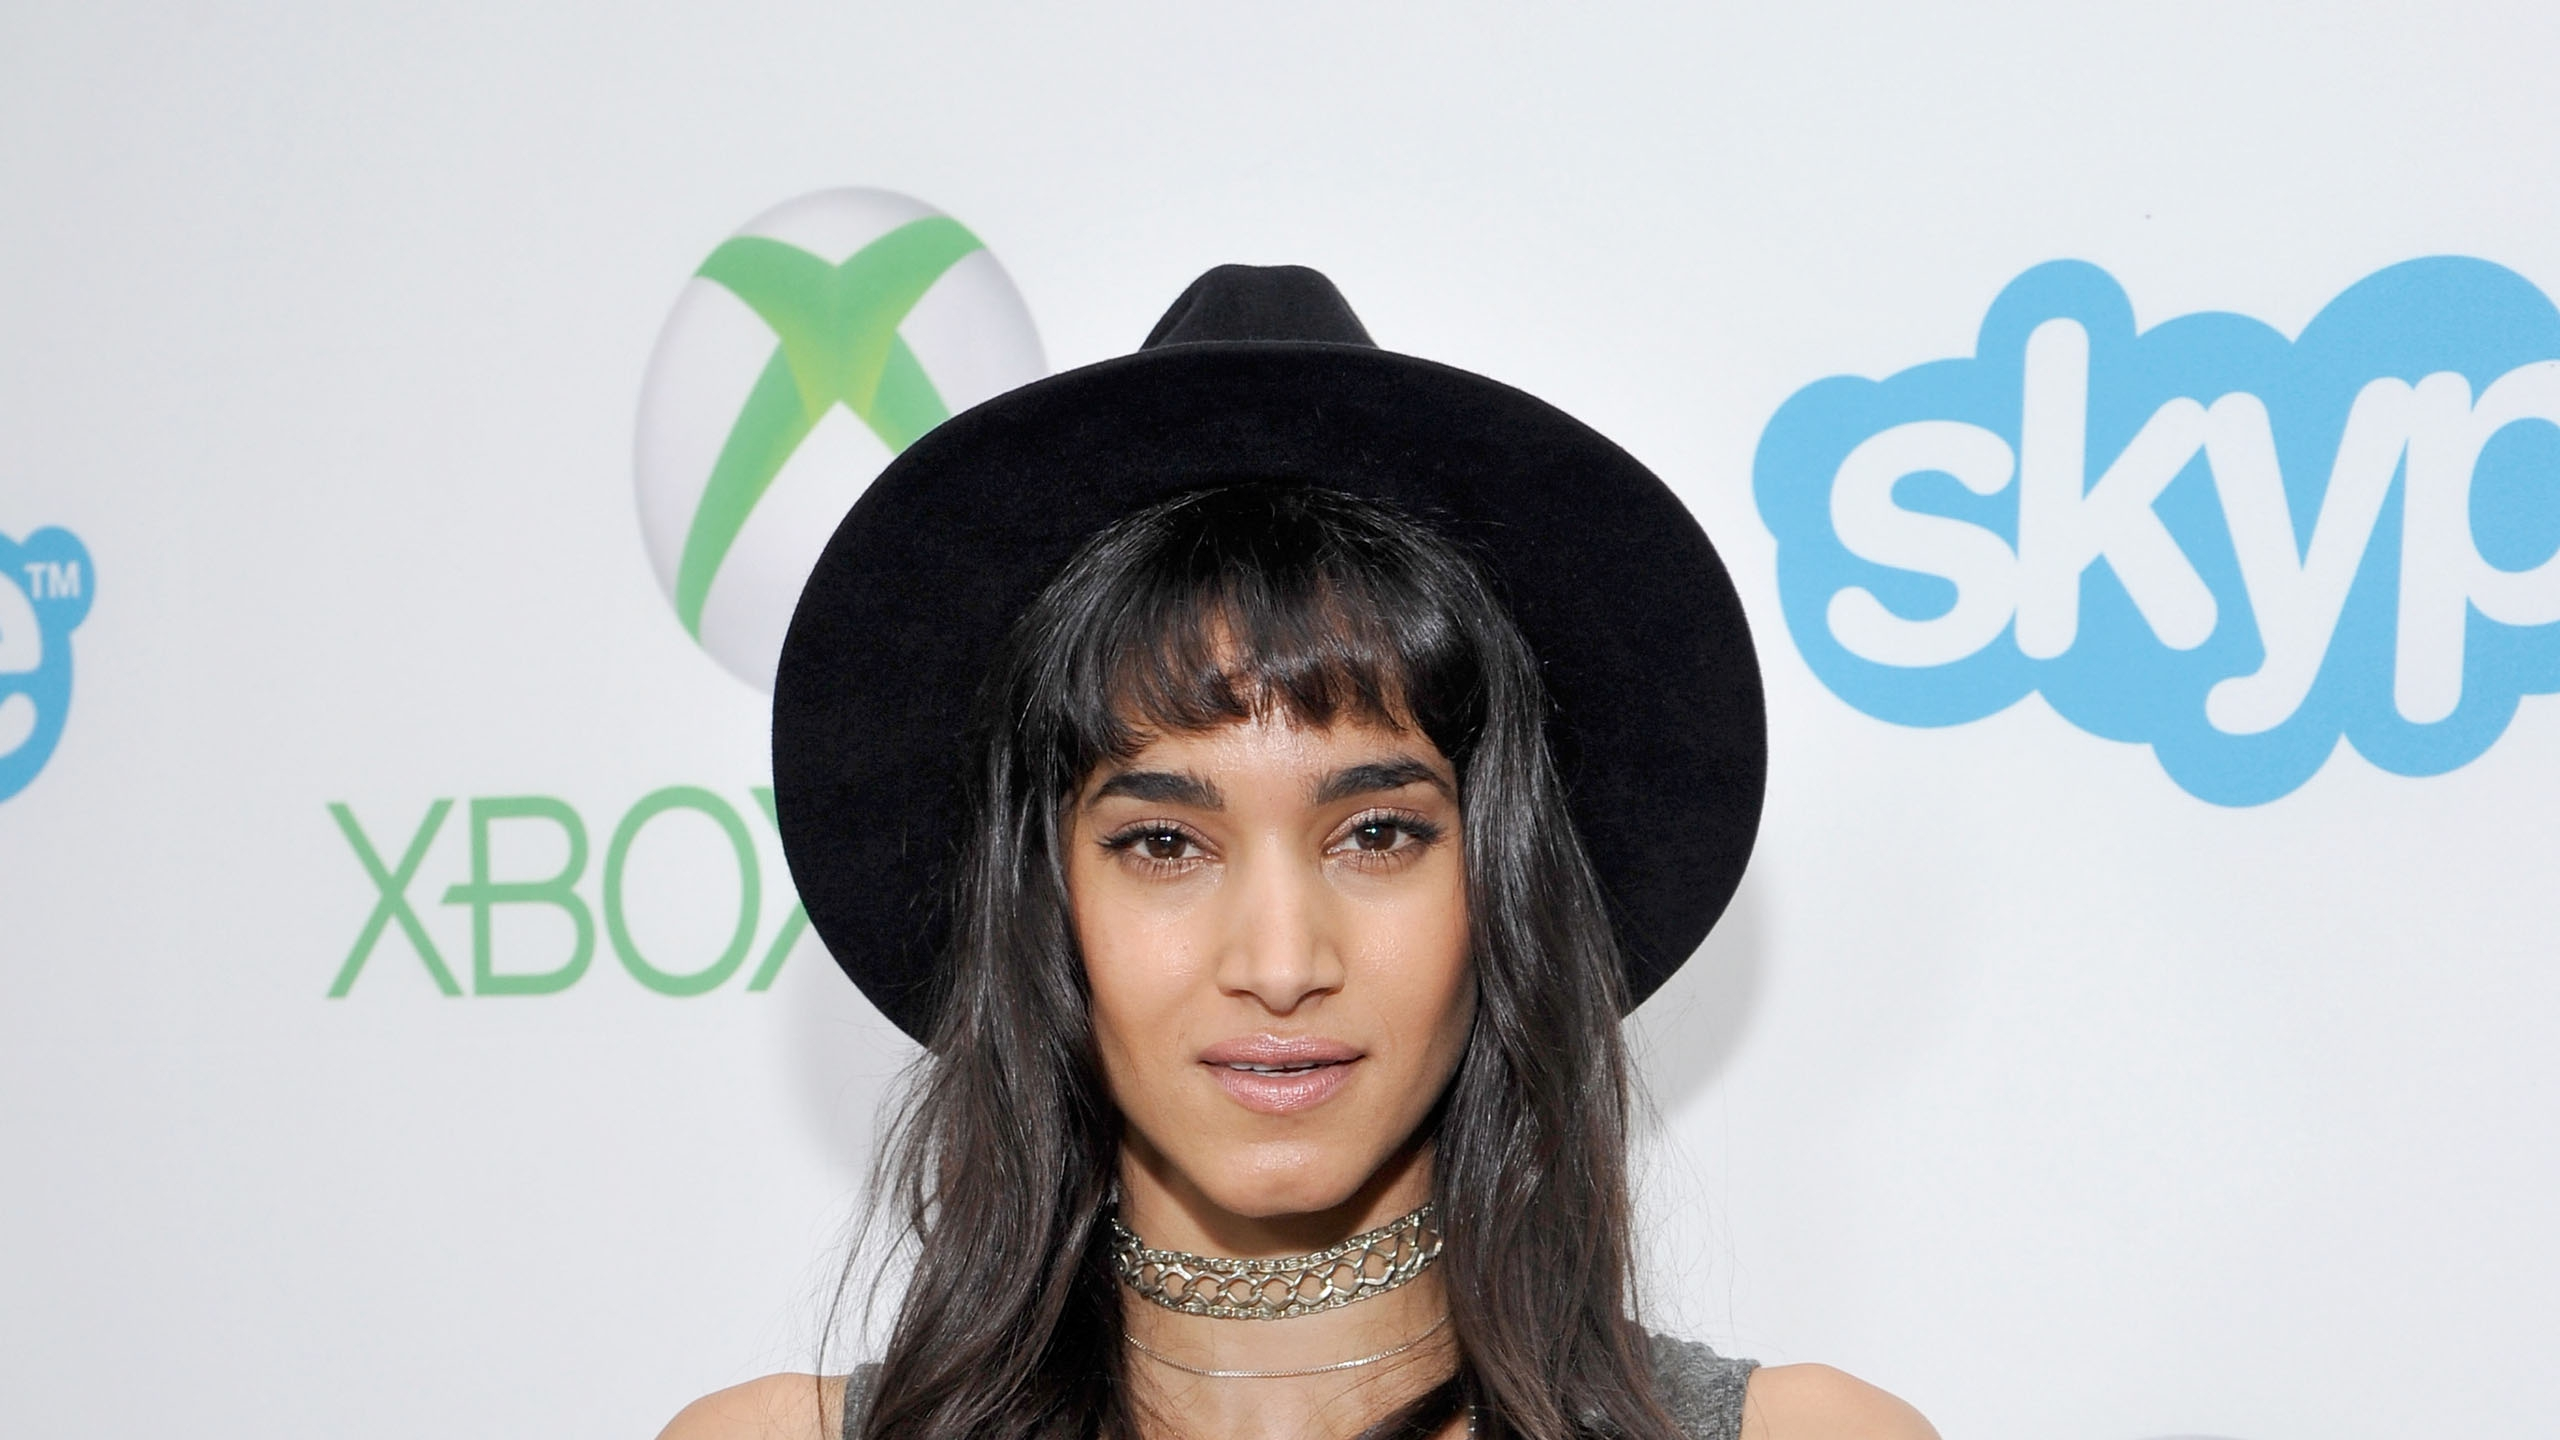 Sofia Boutella Photos